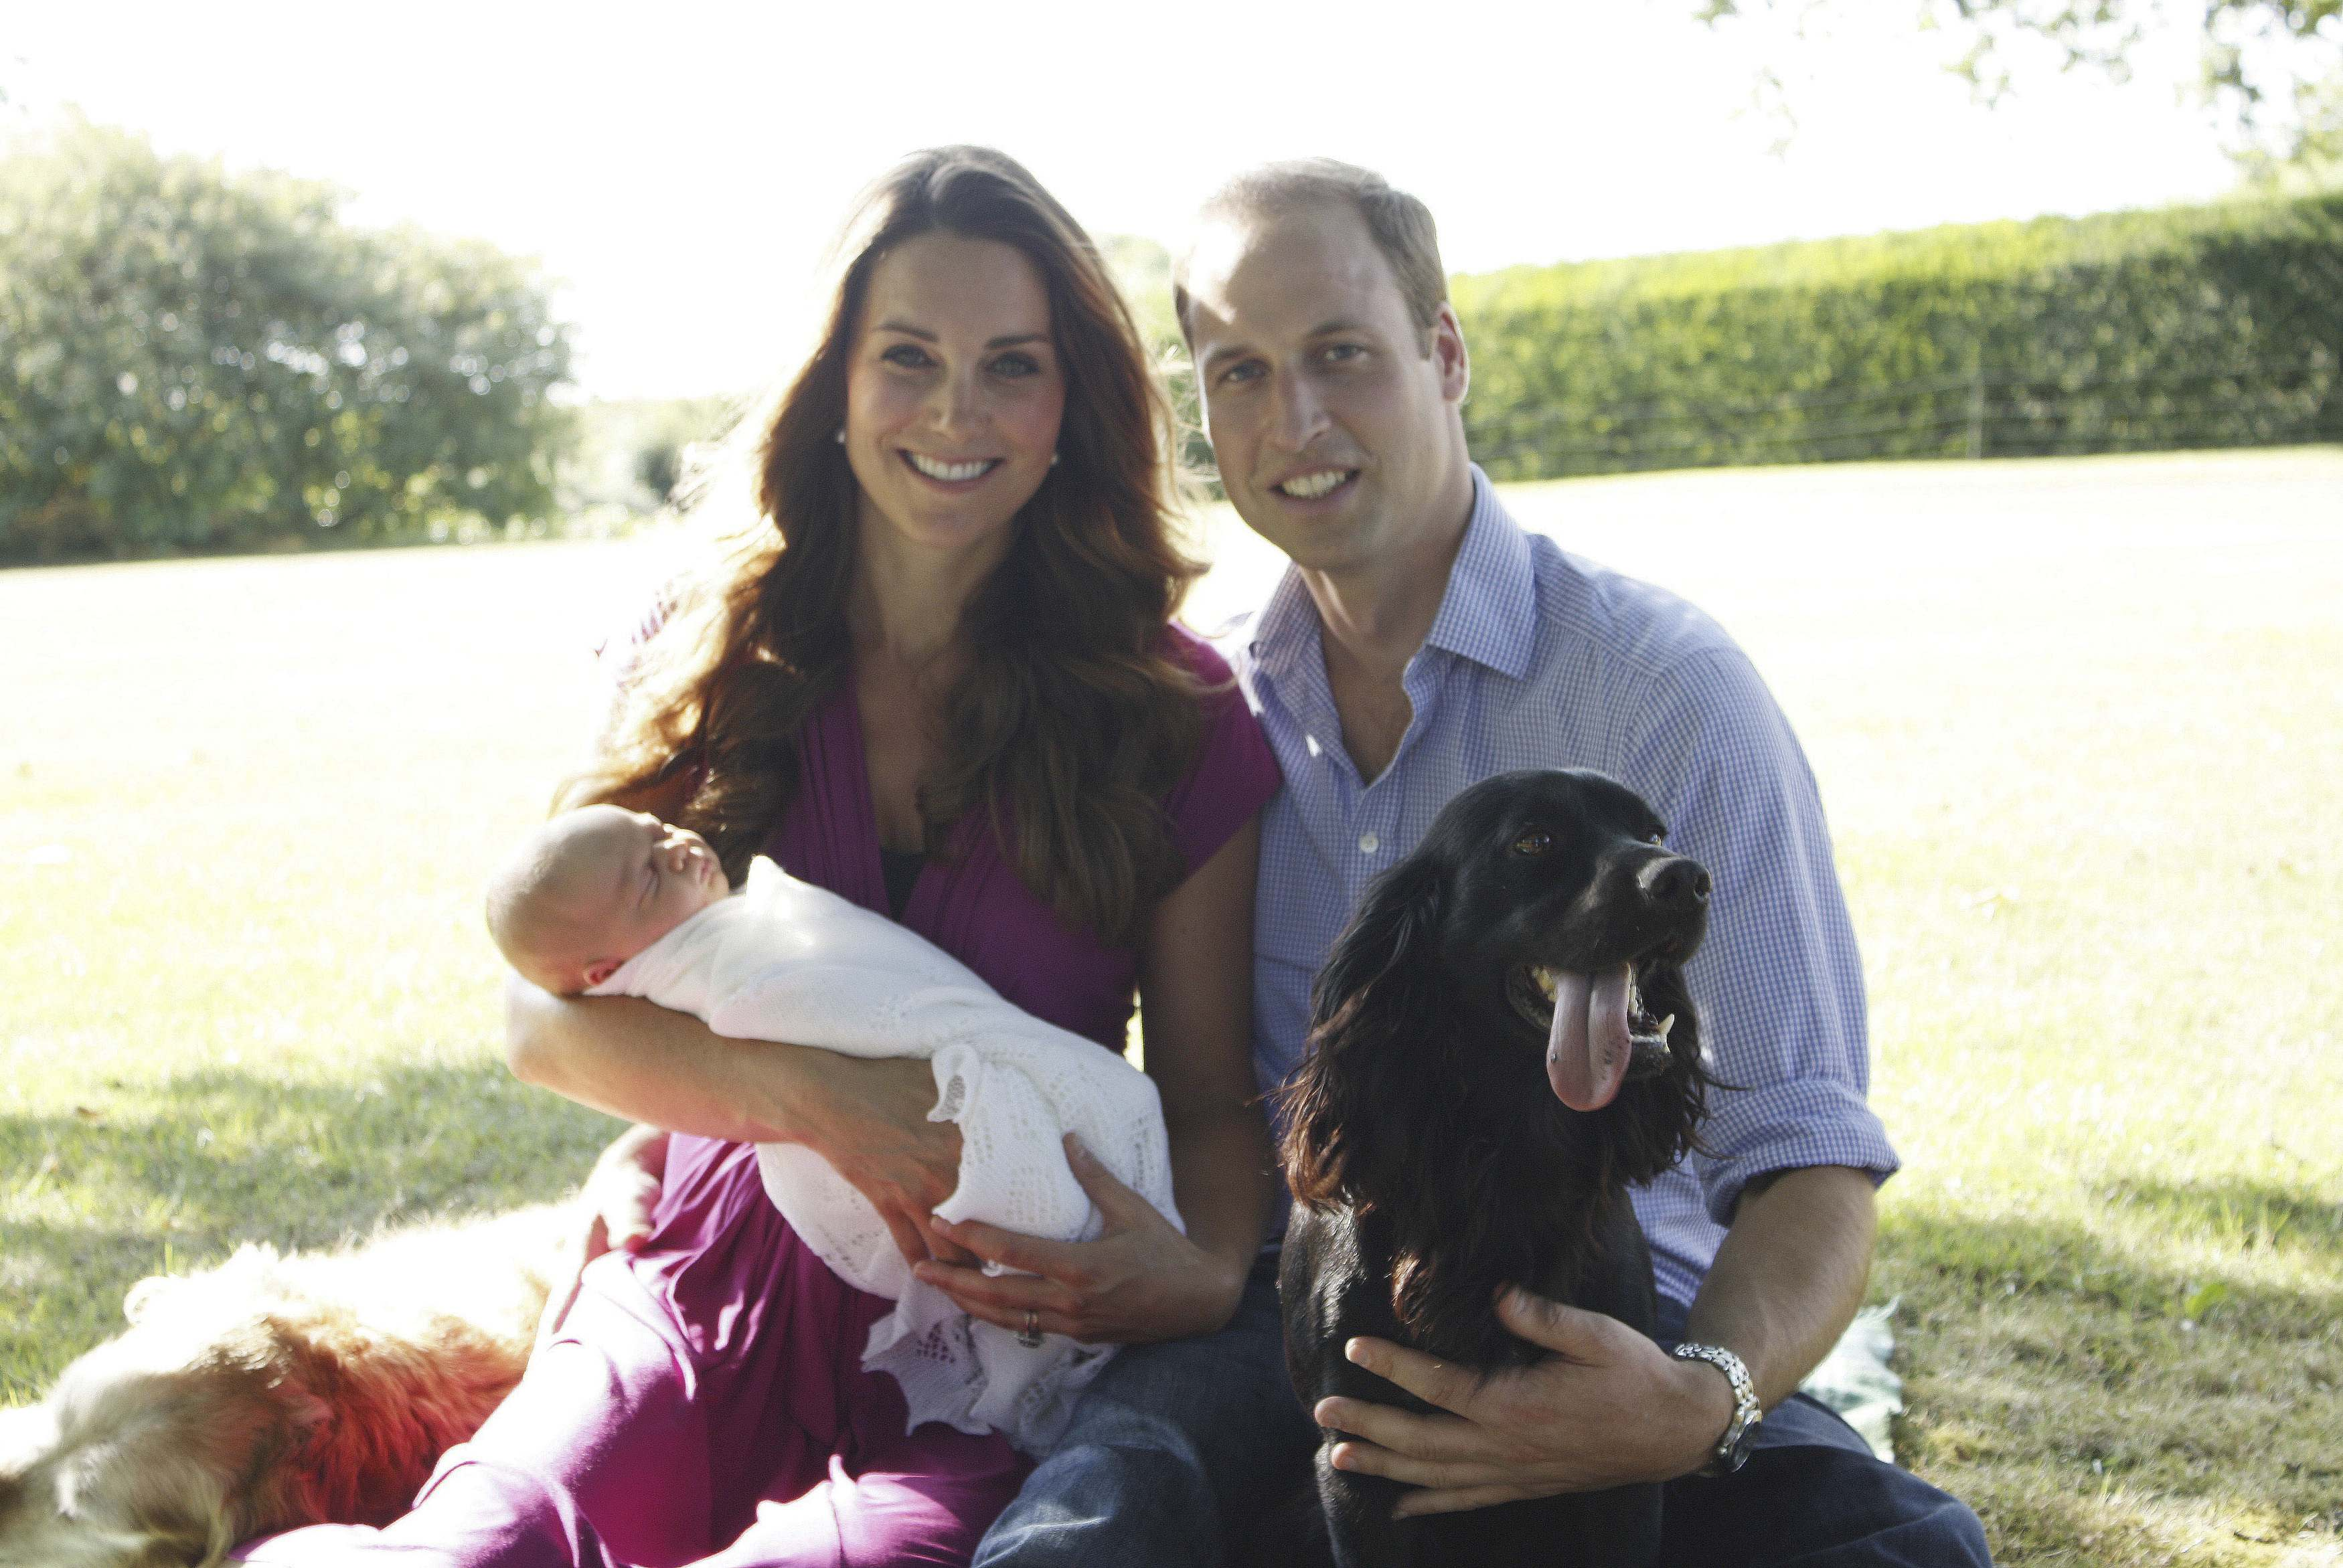 Britain's Prince William and his wife Catherine, Duchess of Cambridge, pose in the garden of the Middleton family home in Bucklebury, southern England, with their son Prince George, cocker spaniel Lupo (R) and Middleton family pet Tilly, in this undated photograph released in London August 19, 2013. REUTERS/Michael Middleton/The Duke and Duchess of Cambridge/Handout via Reuters (BRITAIN - Tags: ROYALS ENTERTAINMENT SOCIETY ANIMALS) NO COMMERCIAL OR BOOK SALES. FOR EDITORIAL USE ONLY. NOT FOR SALE FOR MARKETING OR ADVERTISING CAMPAIGNS. THIS IMAGE HAS BEEN SUPPLIED BY A THIRD PARTY. IT IS DISTRIBUTED, EXACTLY AS RECEIVED BY REUTERS, AS A SERVICE TO CLIENTS. NO THIRD PARTY SALES. NOT FOR USE BY REUTERS THIRD PARTY DISTRIBUTORS